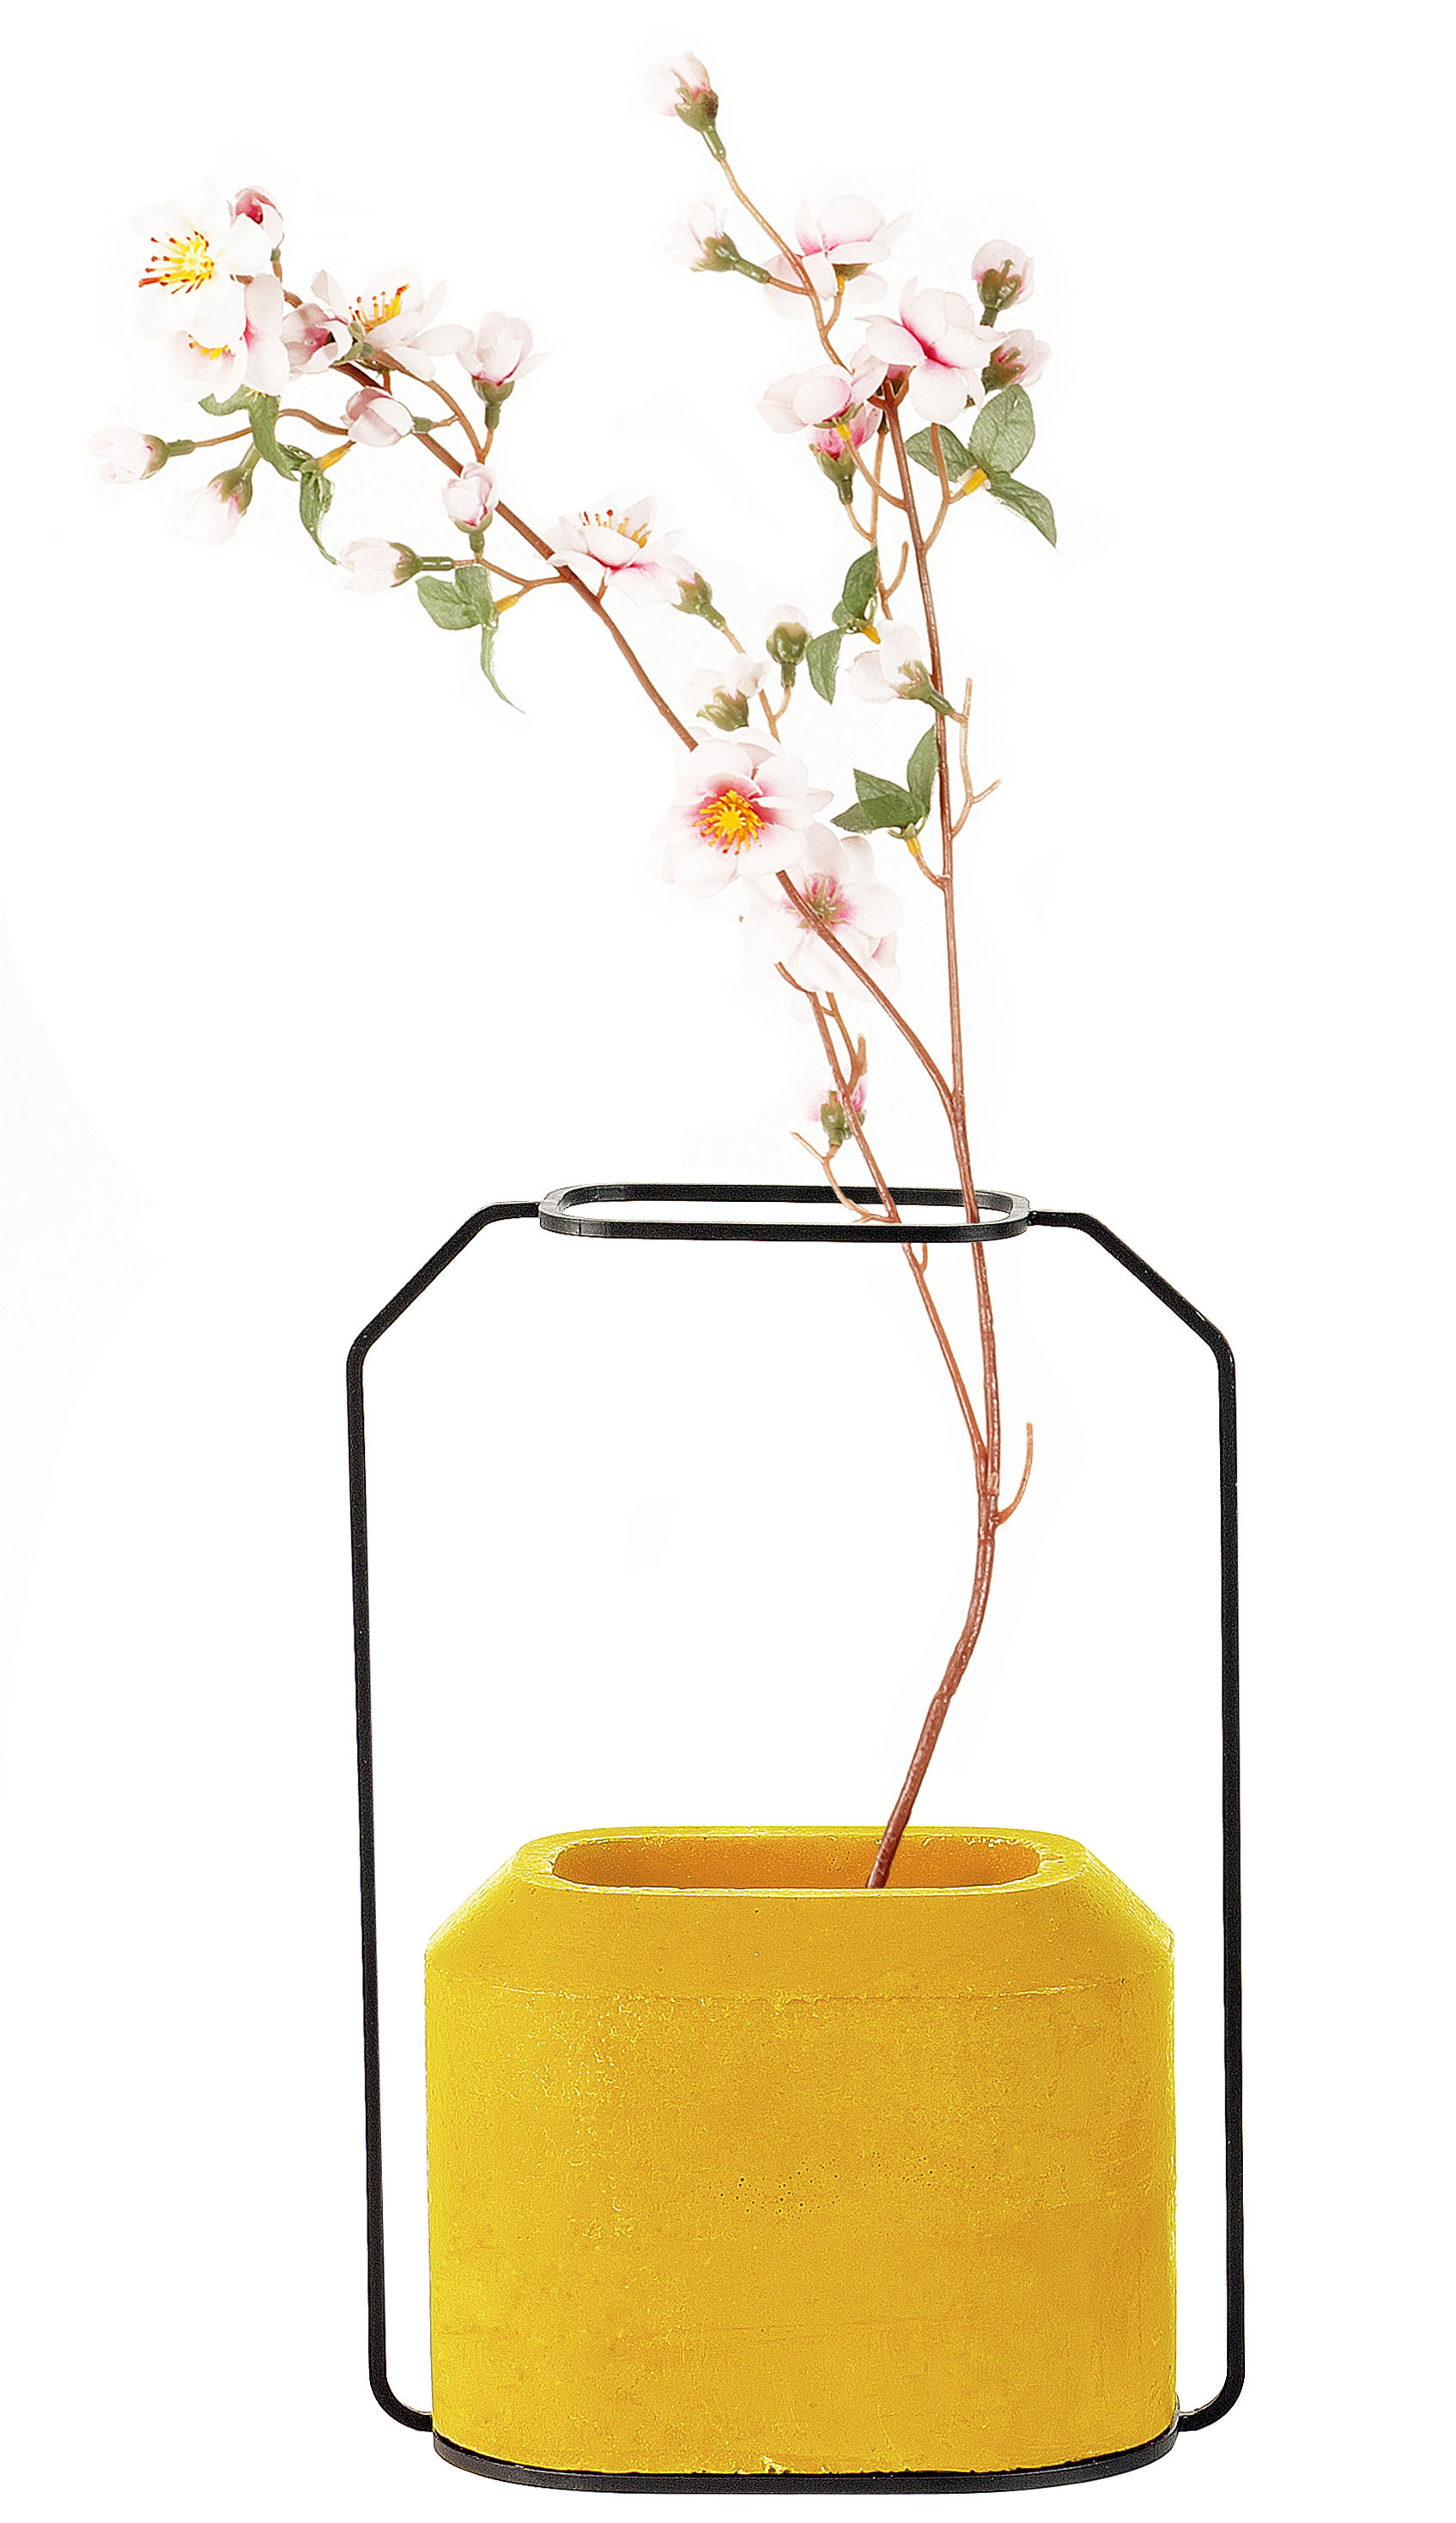 Decoration - Vases - Weight B Vase by Spécimen Editions - Yellow - Concrete, Steel